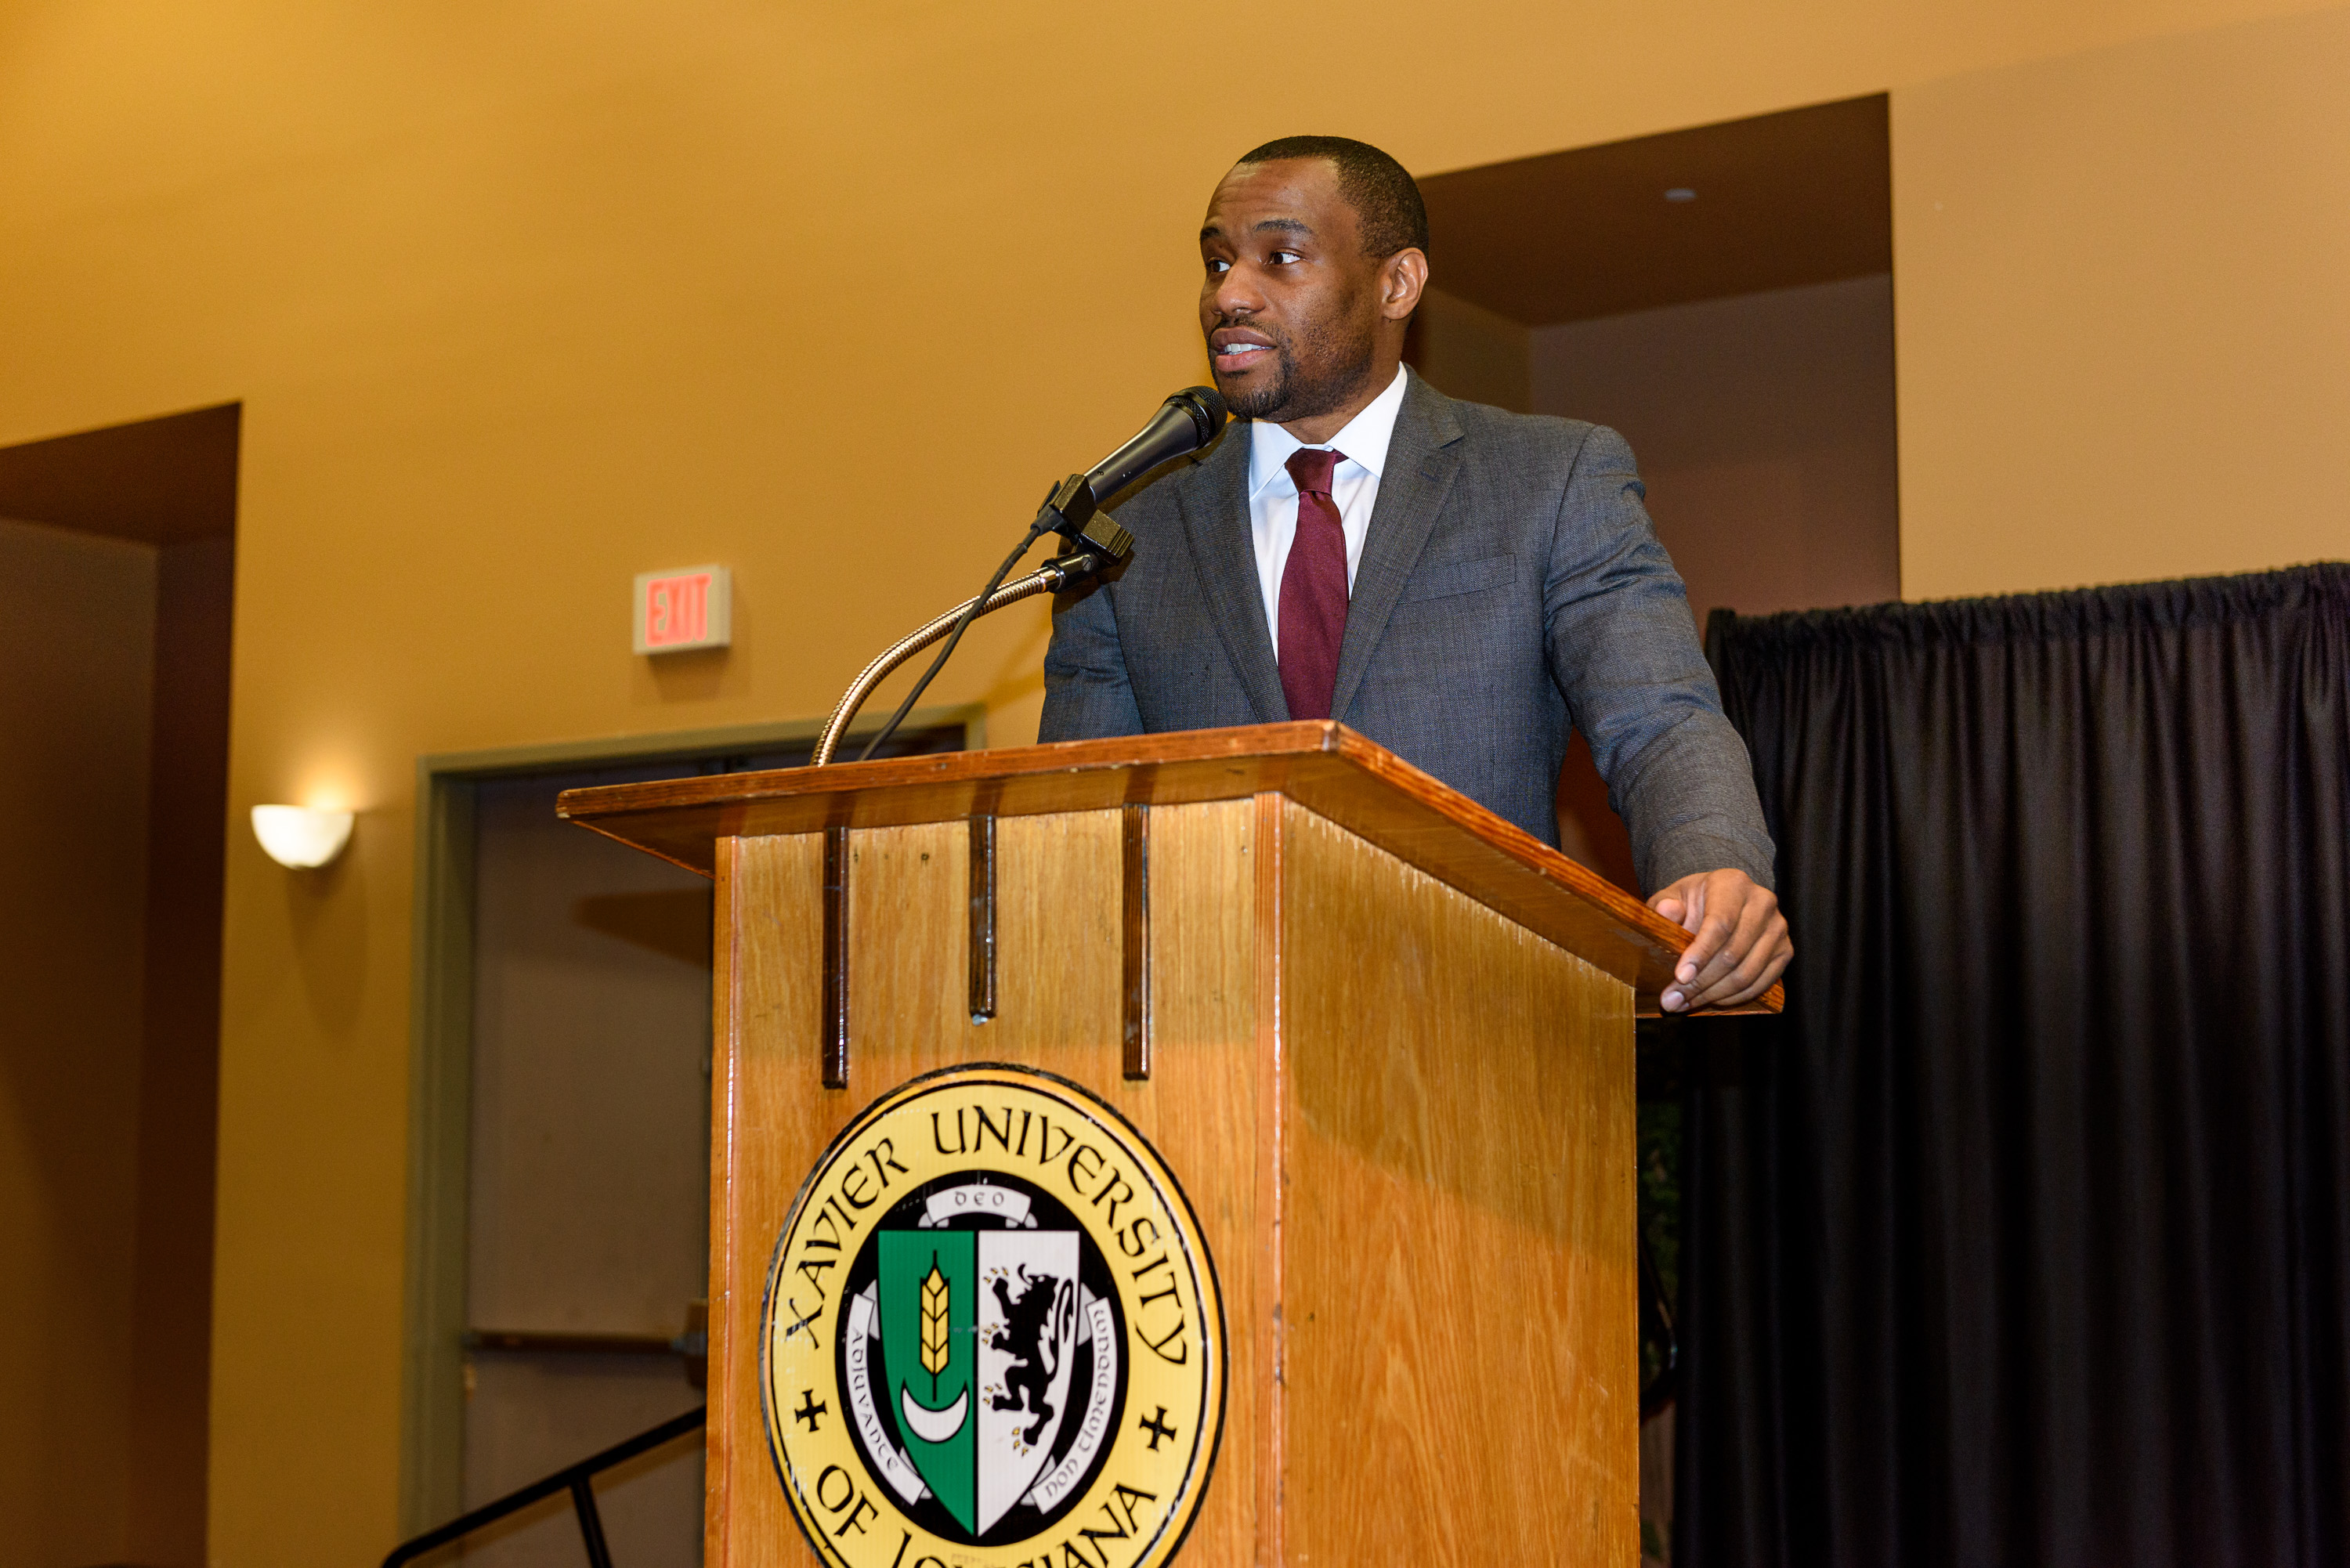 Marc Lamont Hill speaks about activism at Xavier University Feb. 2. (Photo credit: Irving Johnson III)